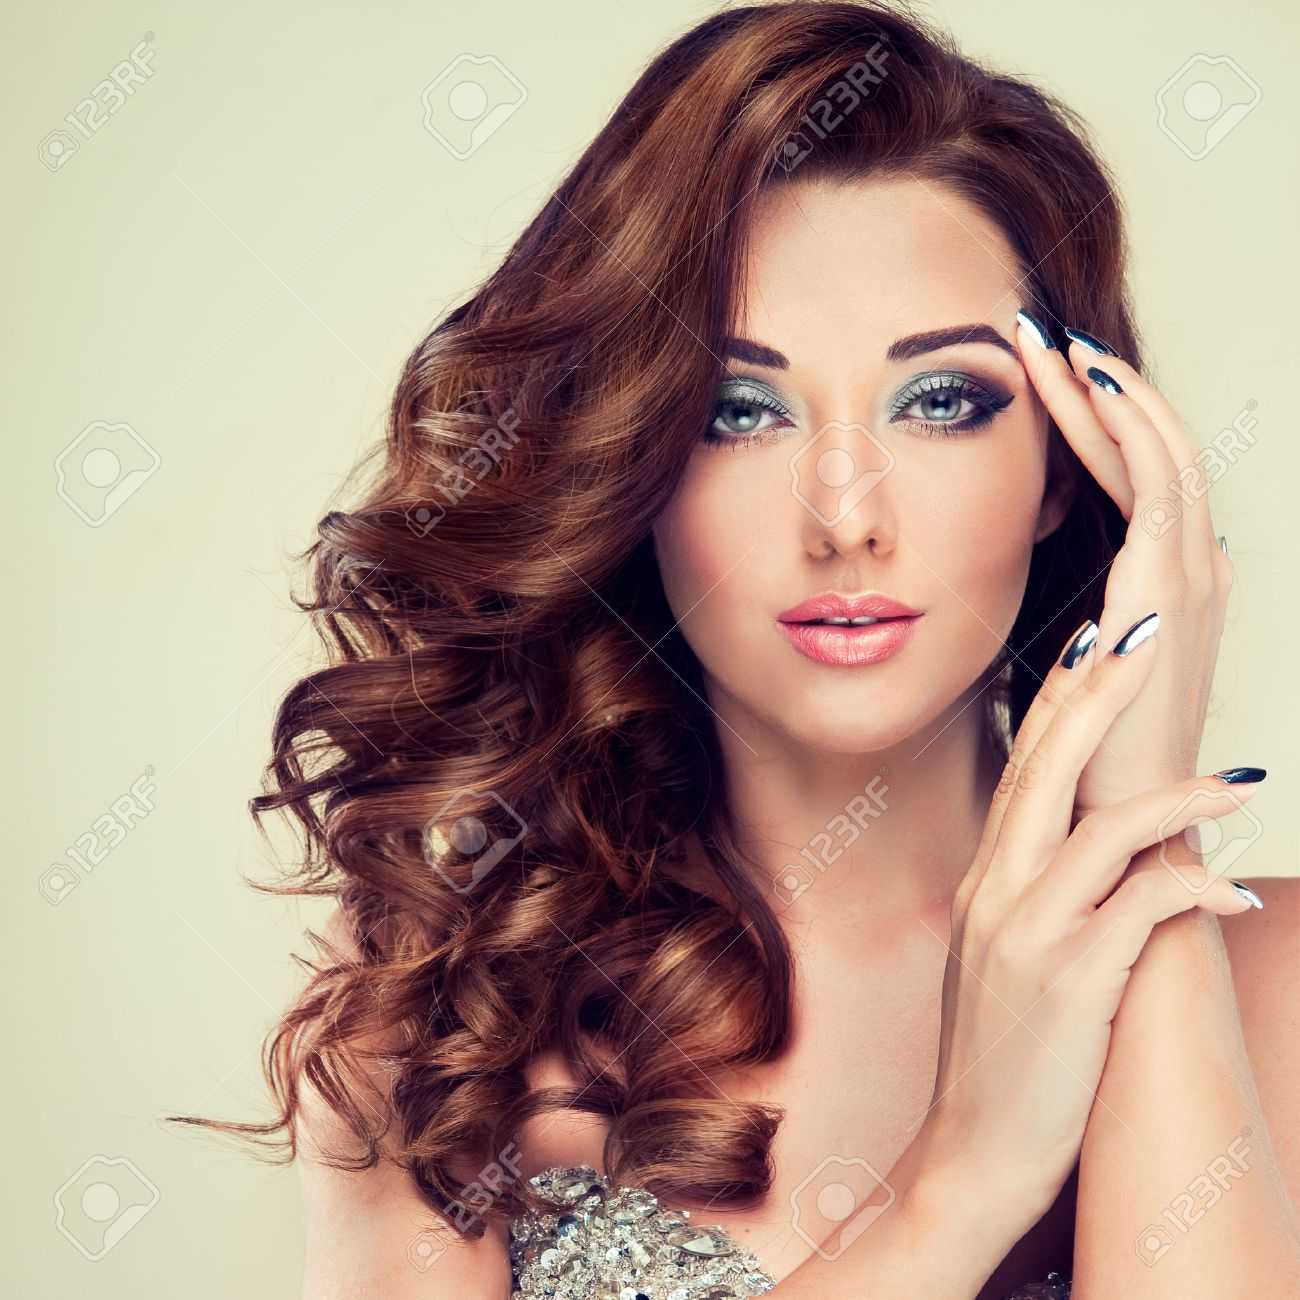 Beautiful Model With Long Curly Hair Fashion Makeup And Silver ...